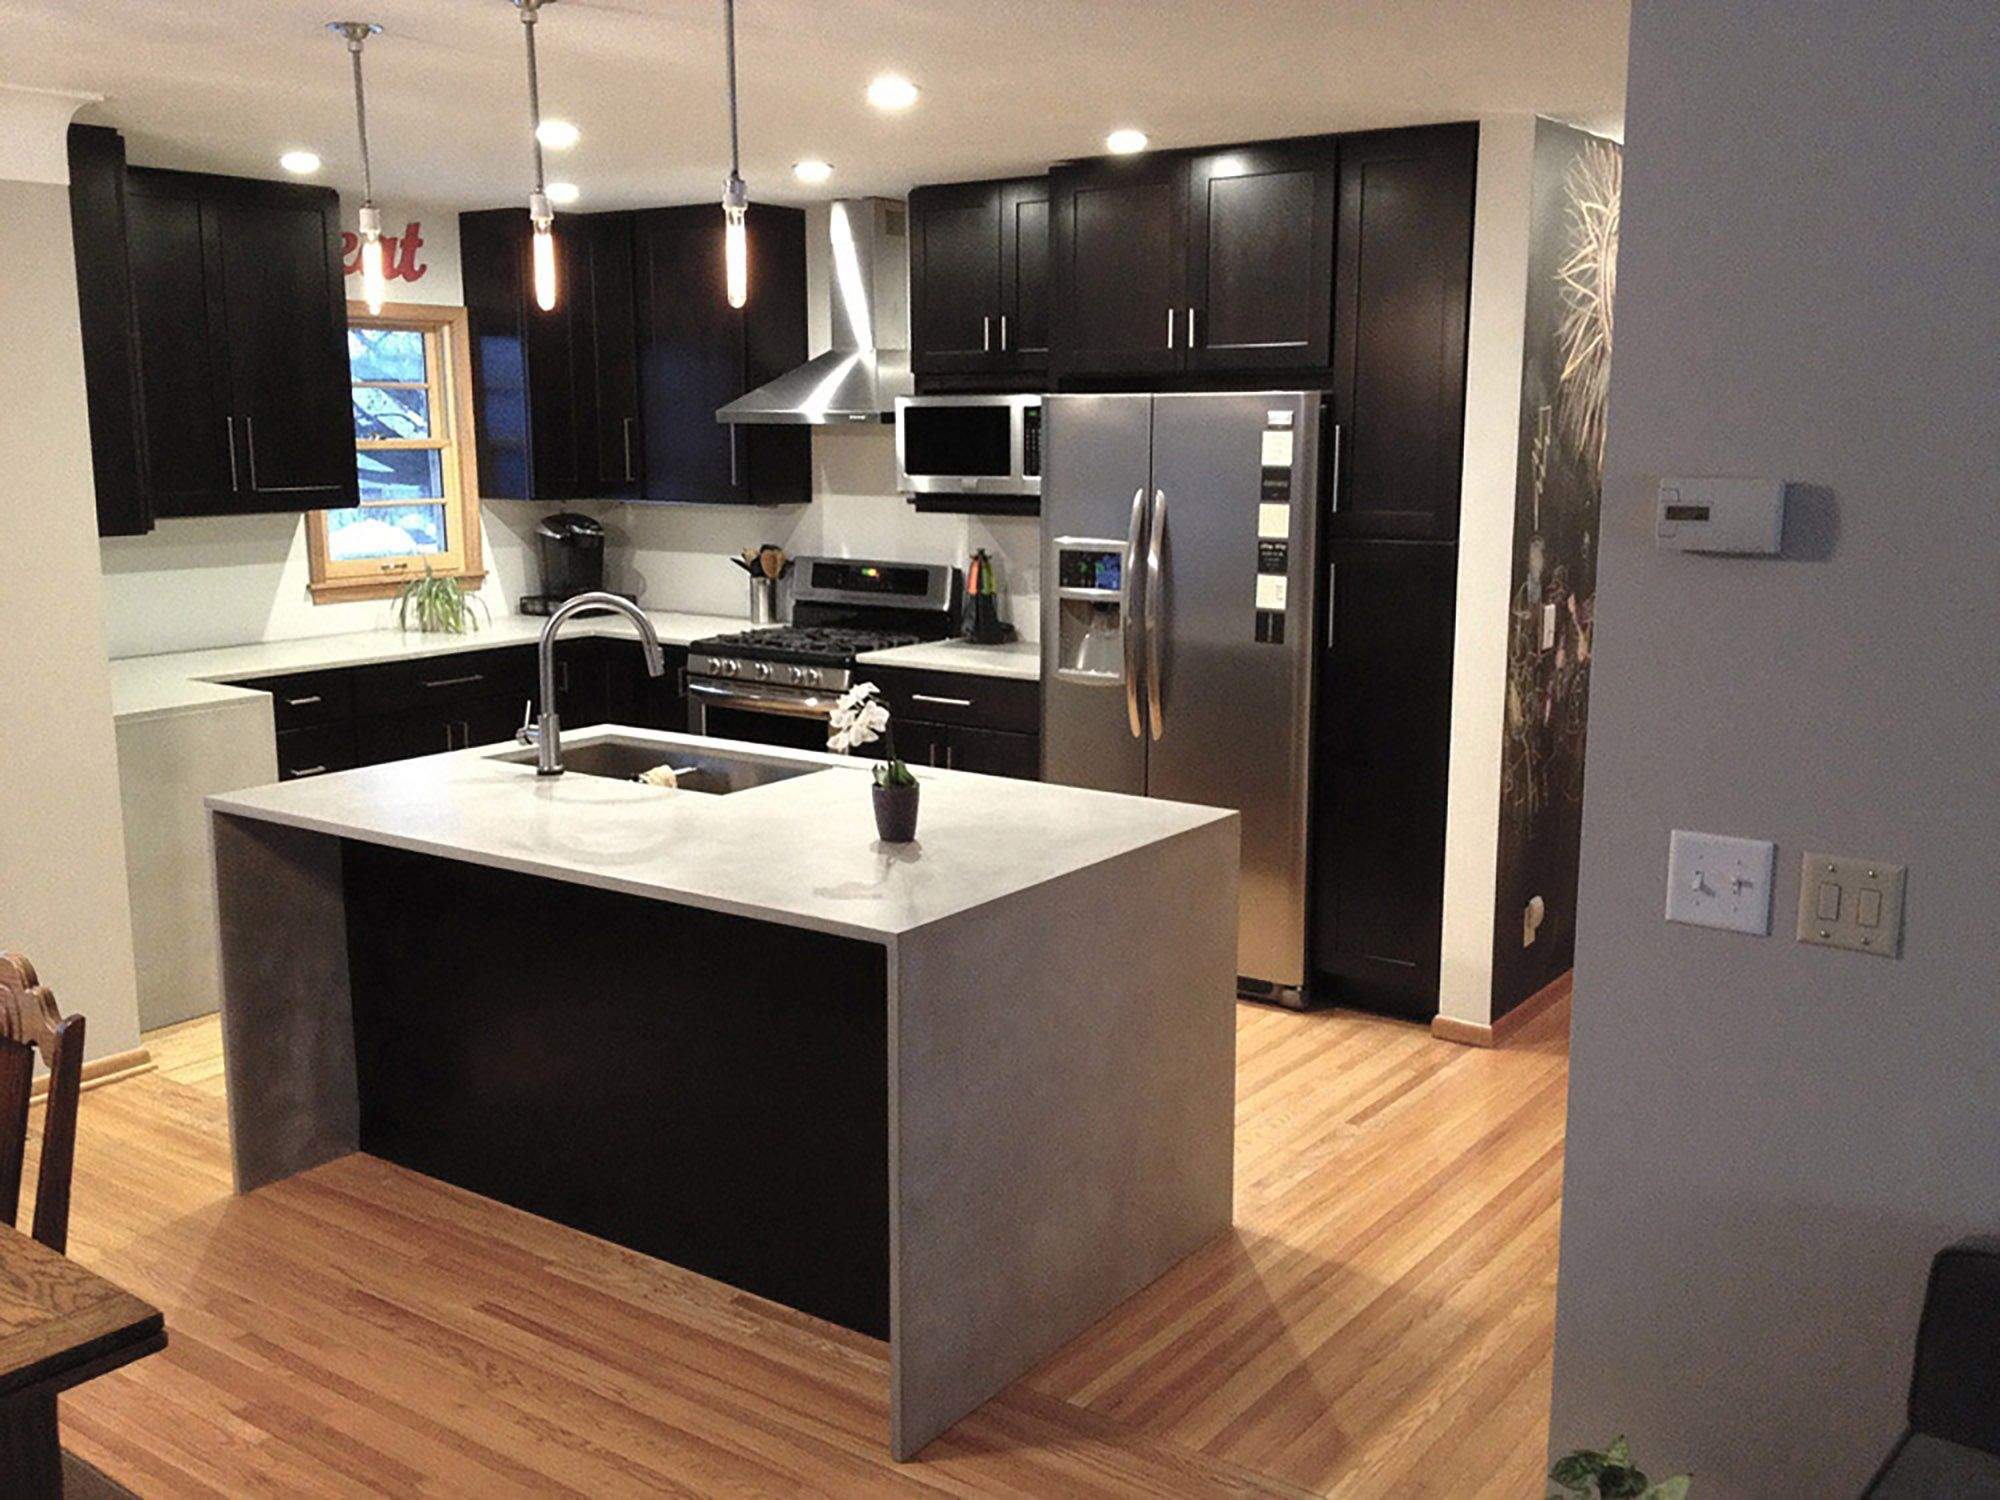 Contemporary Kitchen Design Uses Black Shaker Cabinets And Waterfall Style  Counter On Island